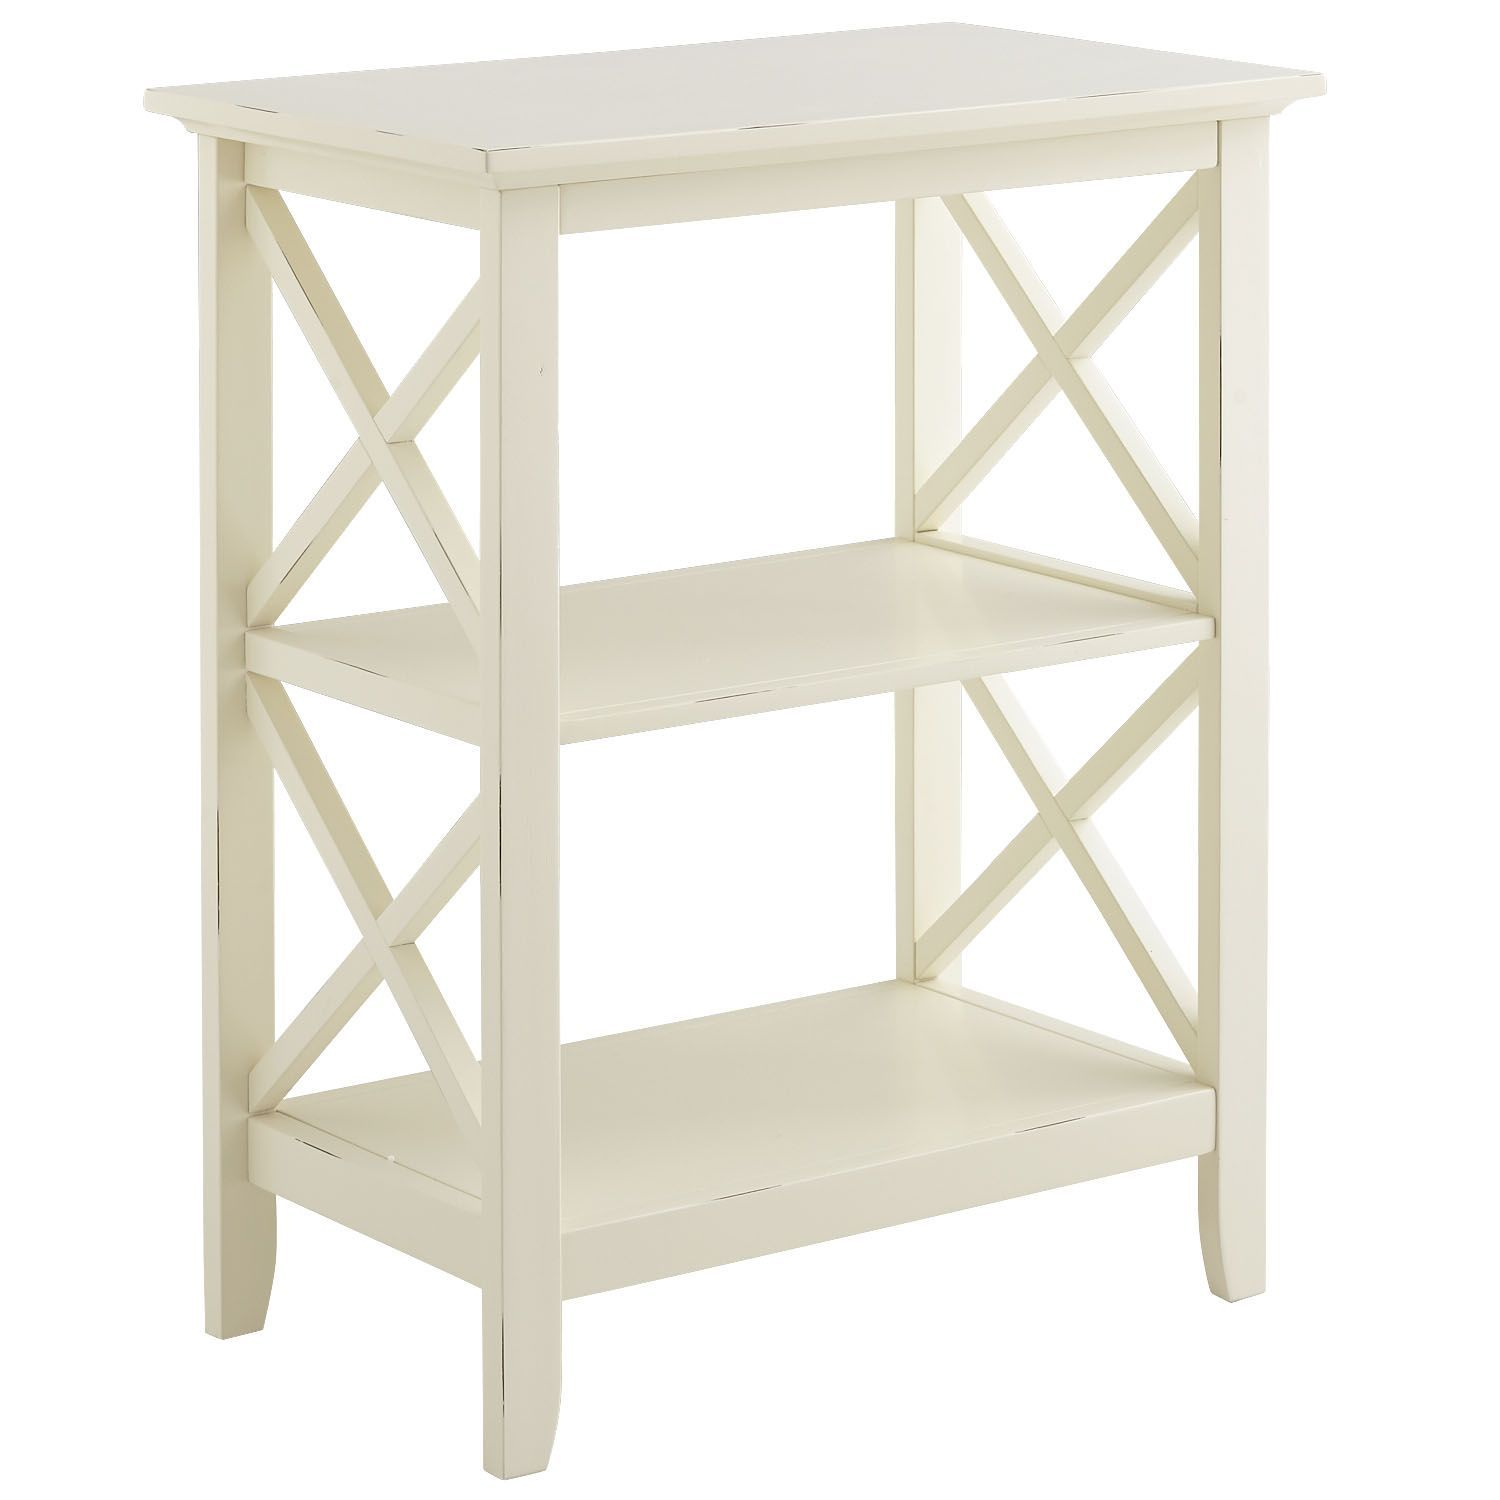 kenzie antique white accent table products dining cover set mosaic garden bistro farm door small metal legs cast aluminum end glass bedside drawers bar height patio unfinished